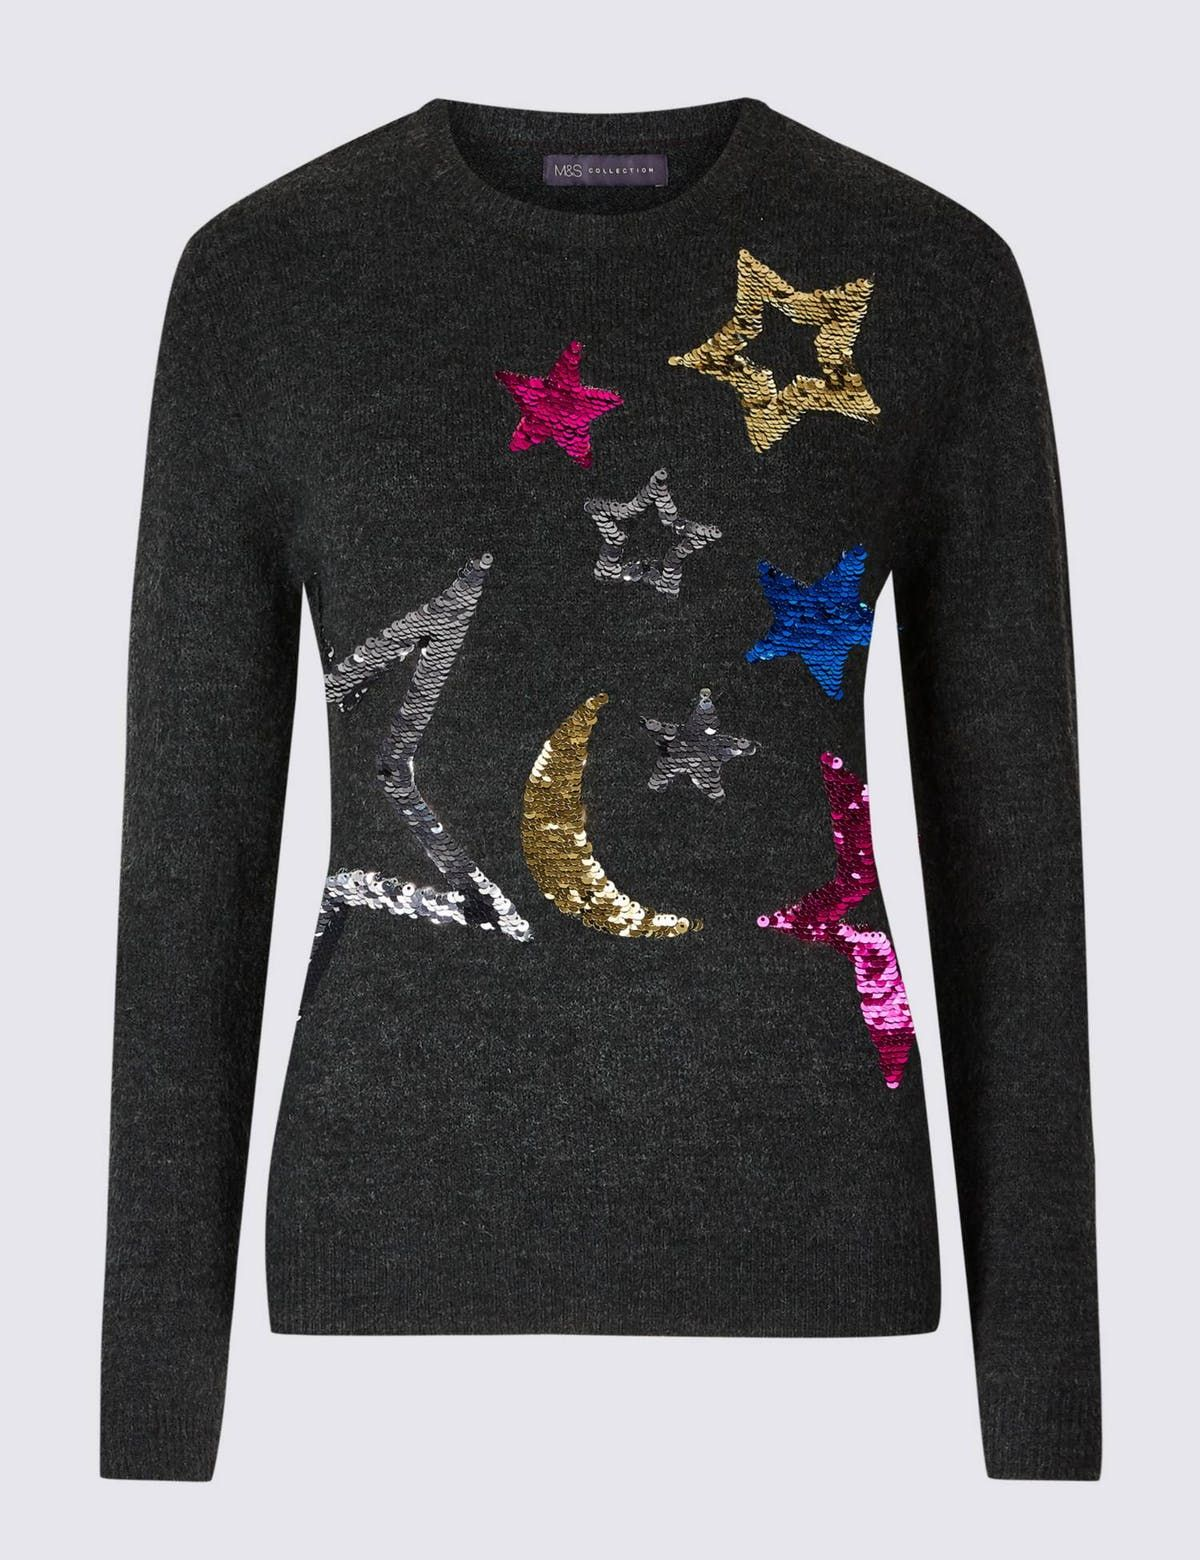 e8409d1b592 21 of the best Christmas jumpers to don this festive season | Pul ...